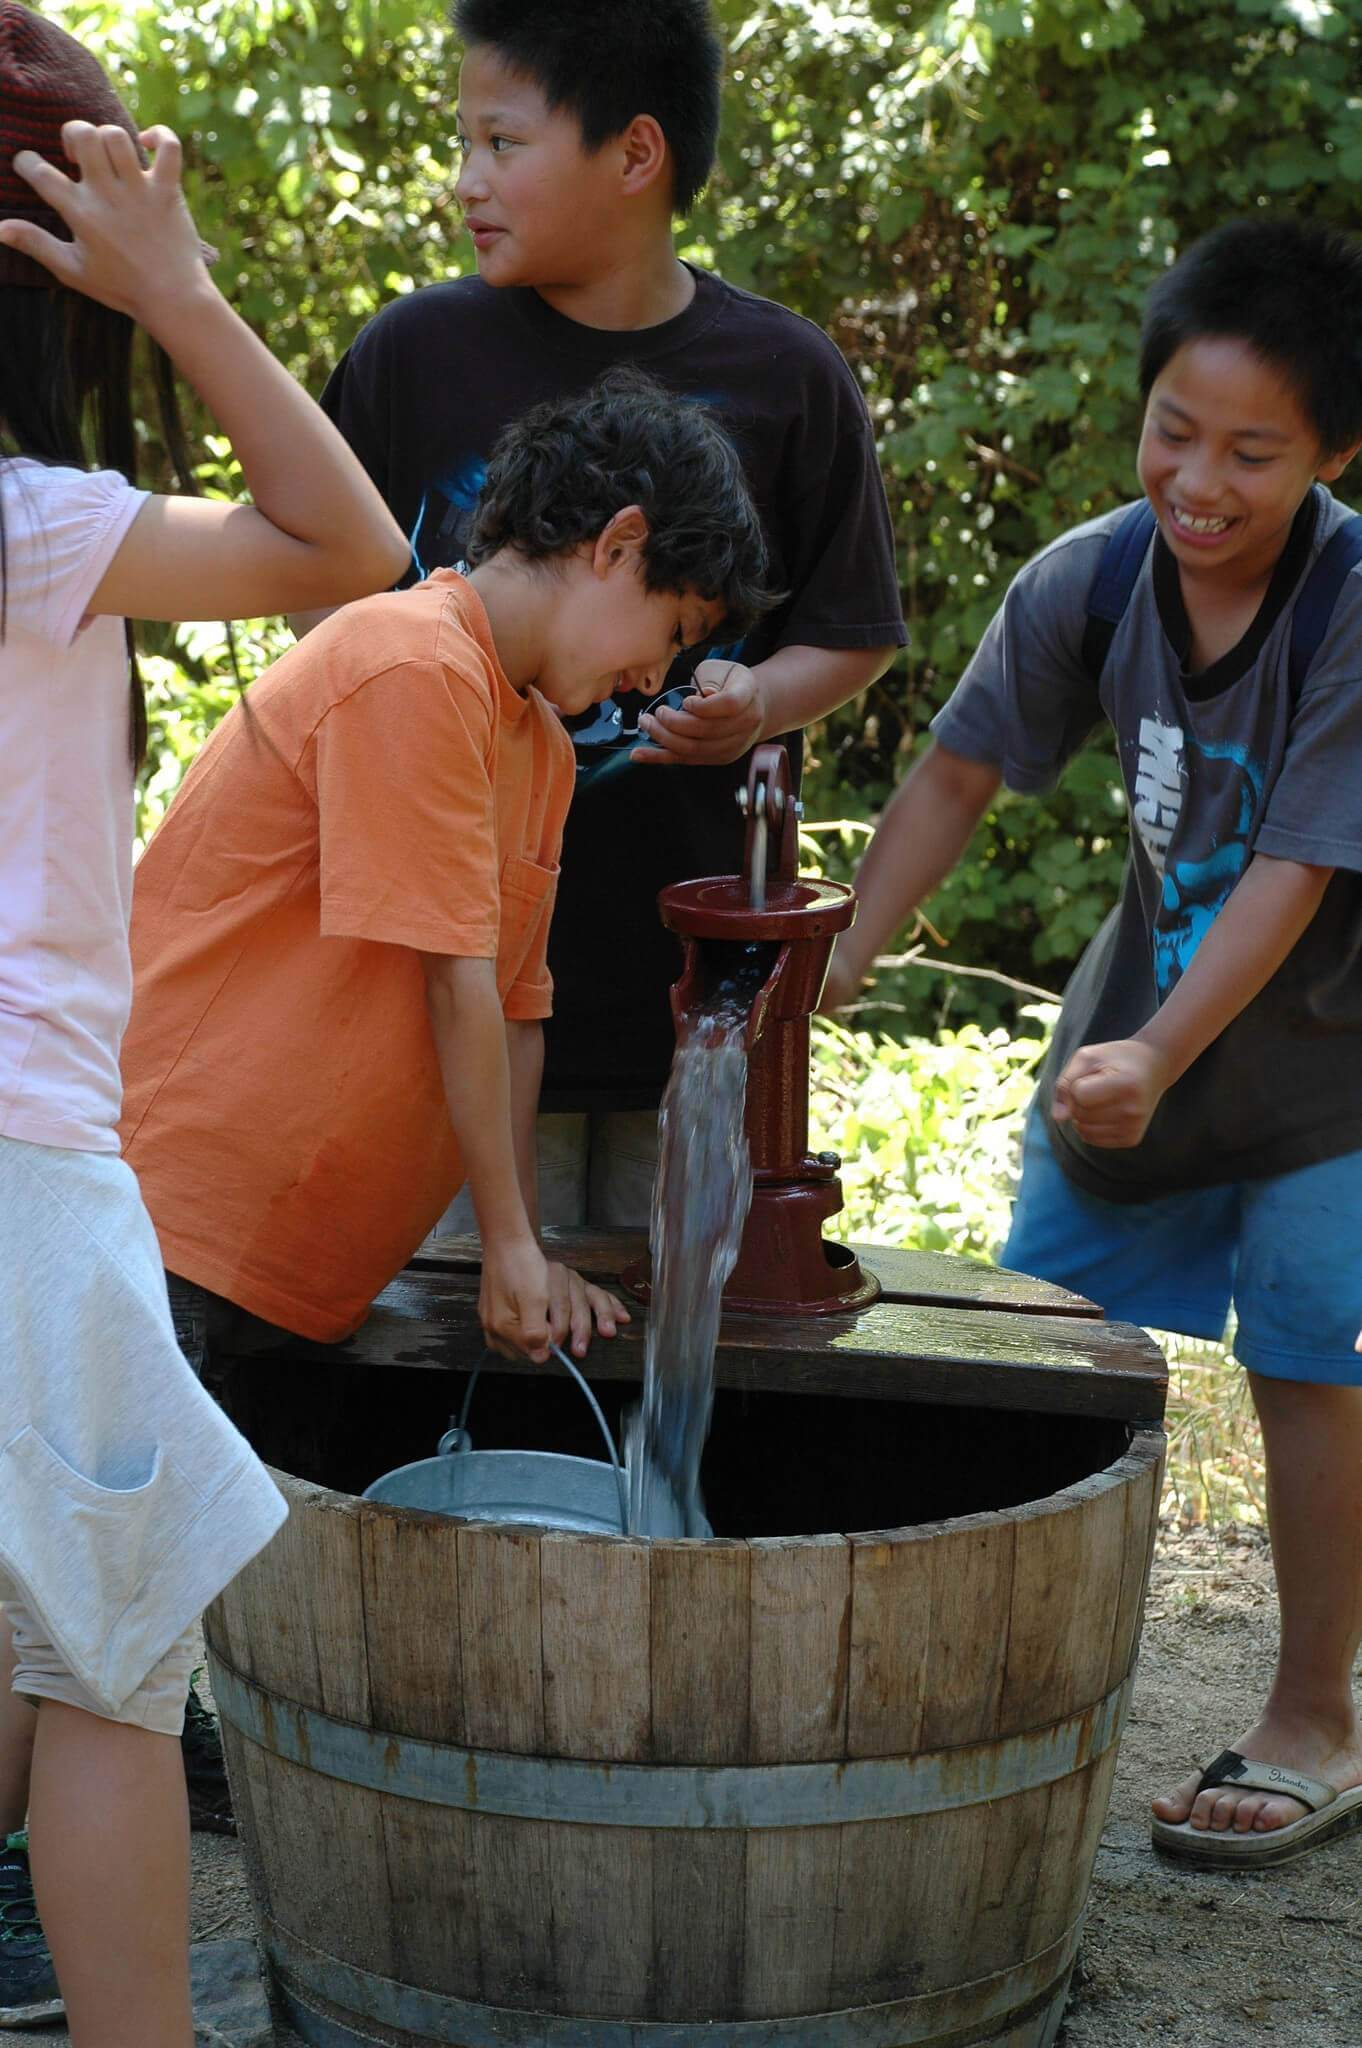 pumping water from a mock well on a school field trip